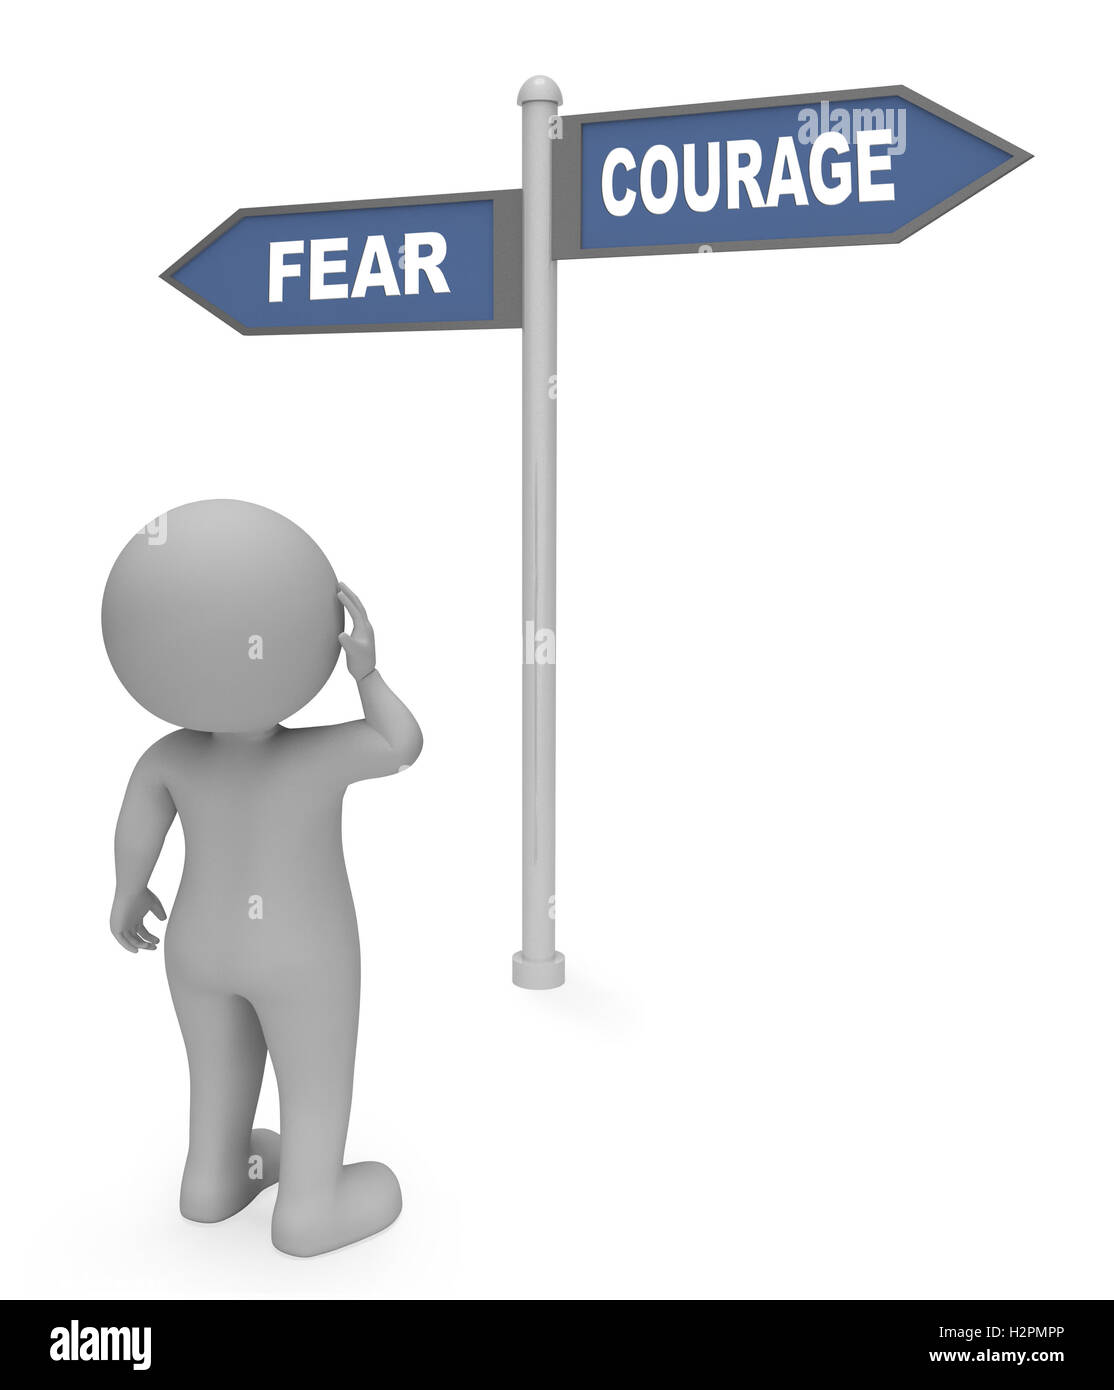 Character Looking At Fear Courage Sign Indicates Terror Or Bravery 3d Rendering Stock Photo